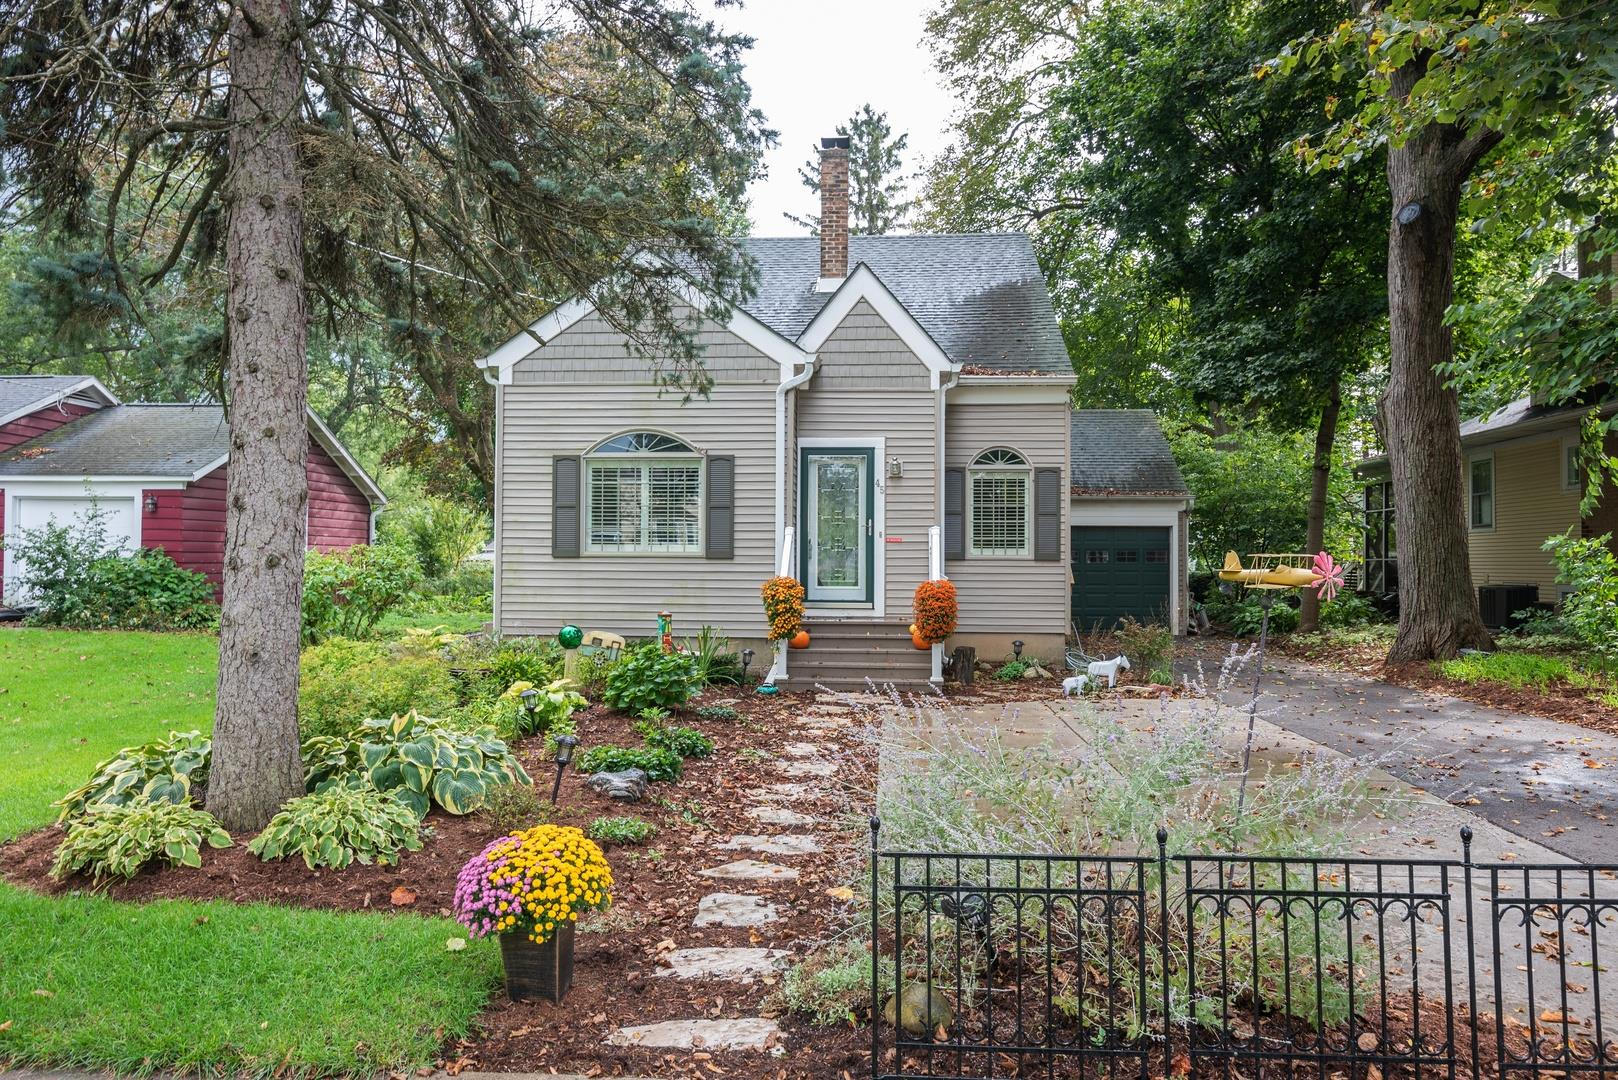 45 Esther Street, Crystal Lake, IL 60014 - #: 10532302